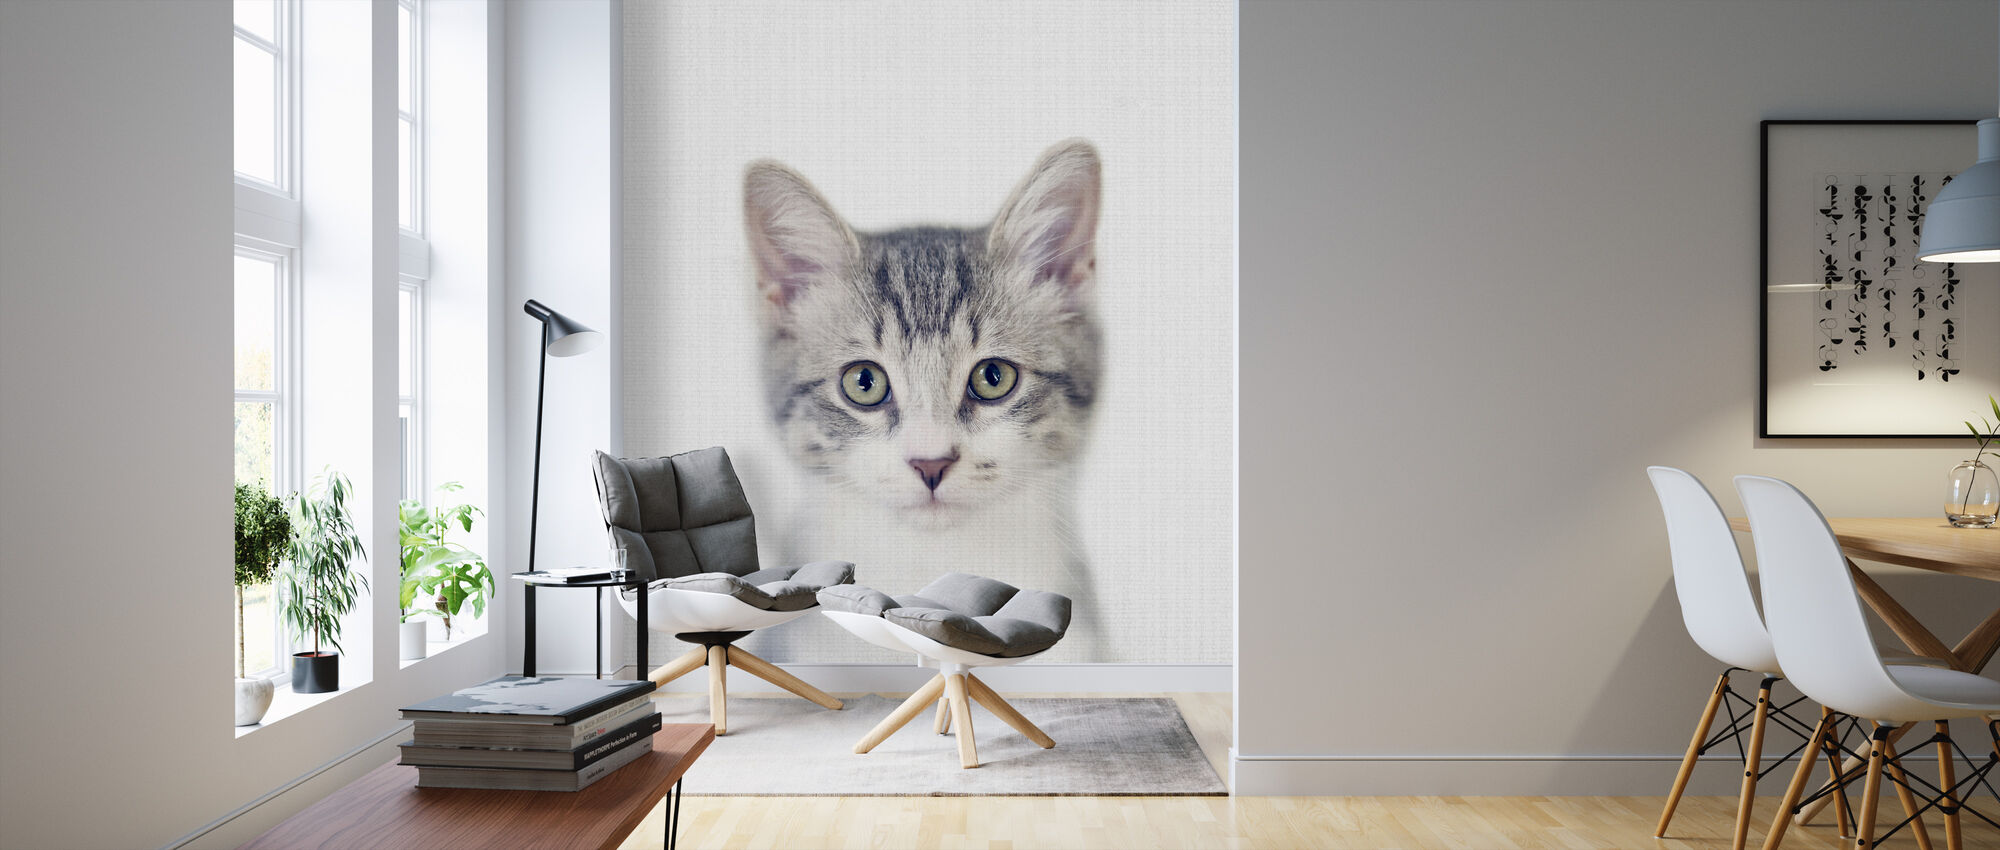 Kitten - Wallpaper - Living Room